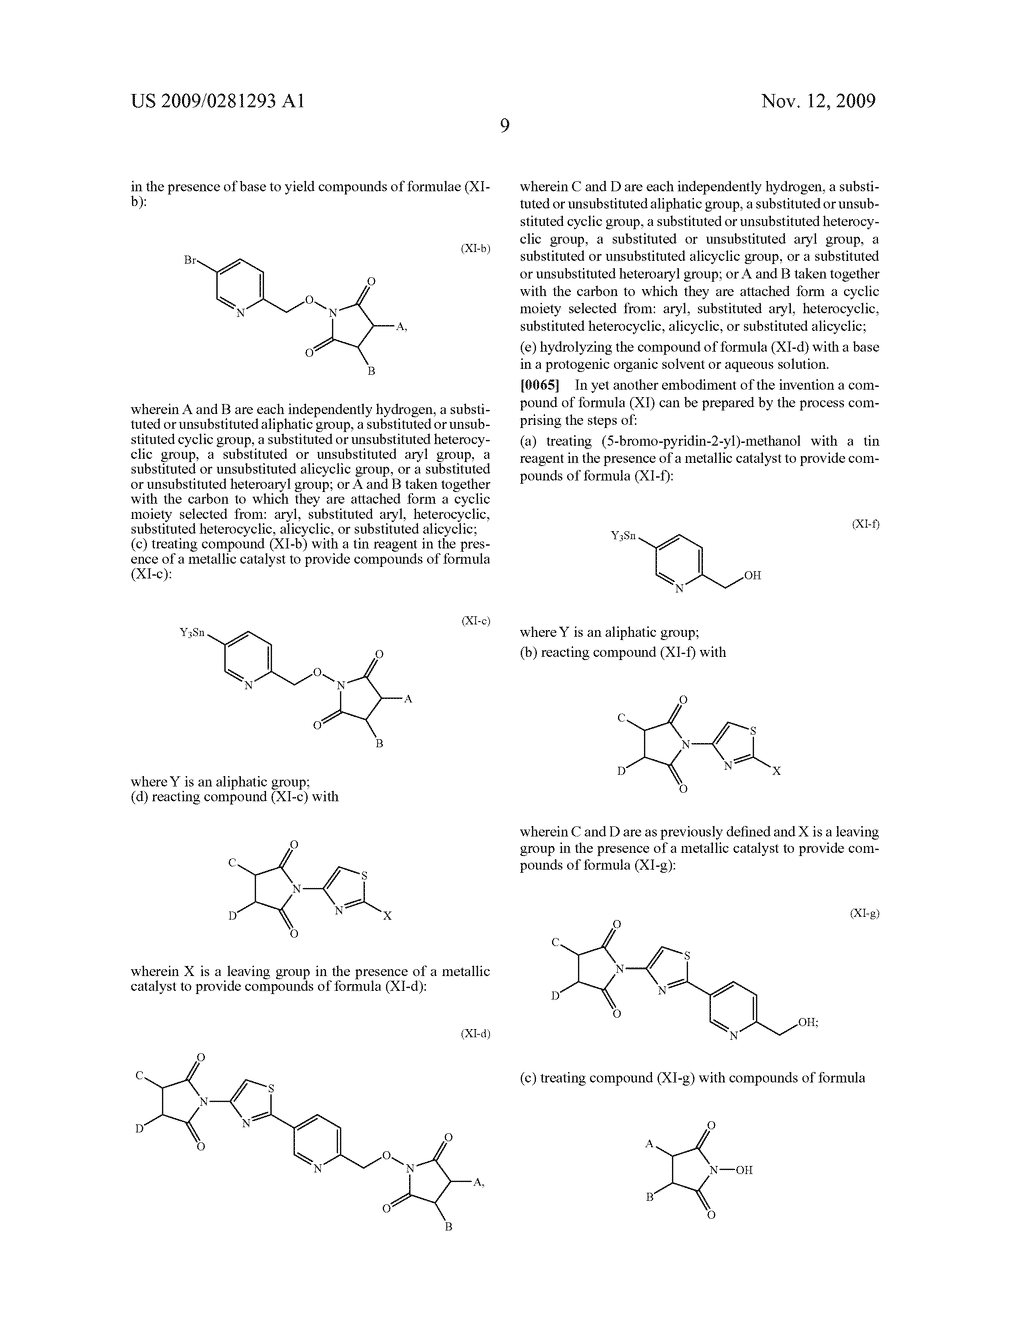 PROCESSES FOR THE PREPARATION OF 2 FLUORO 6-11 BICYCLIC ERYTHROMYCIN DERIVATIVES - diagram, schematic, and image 10